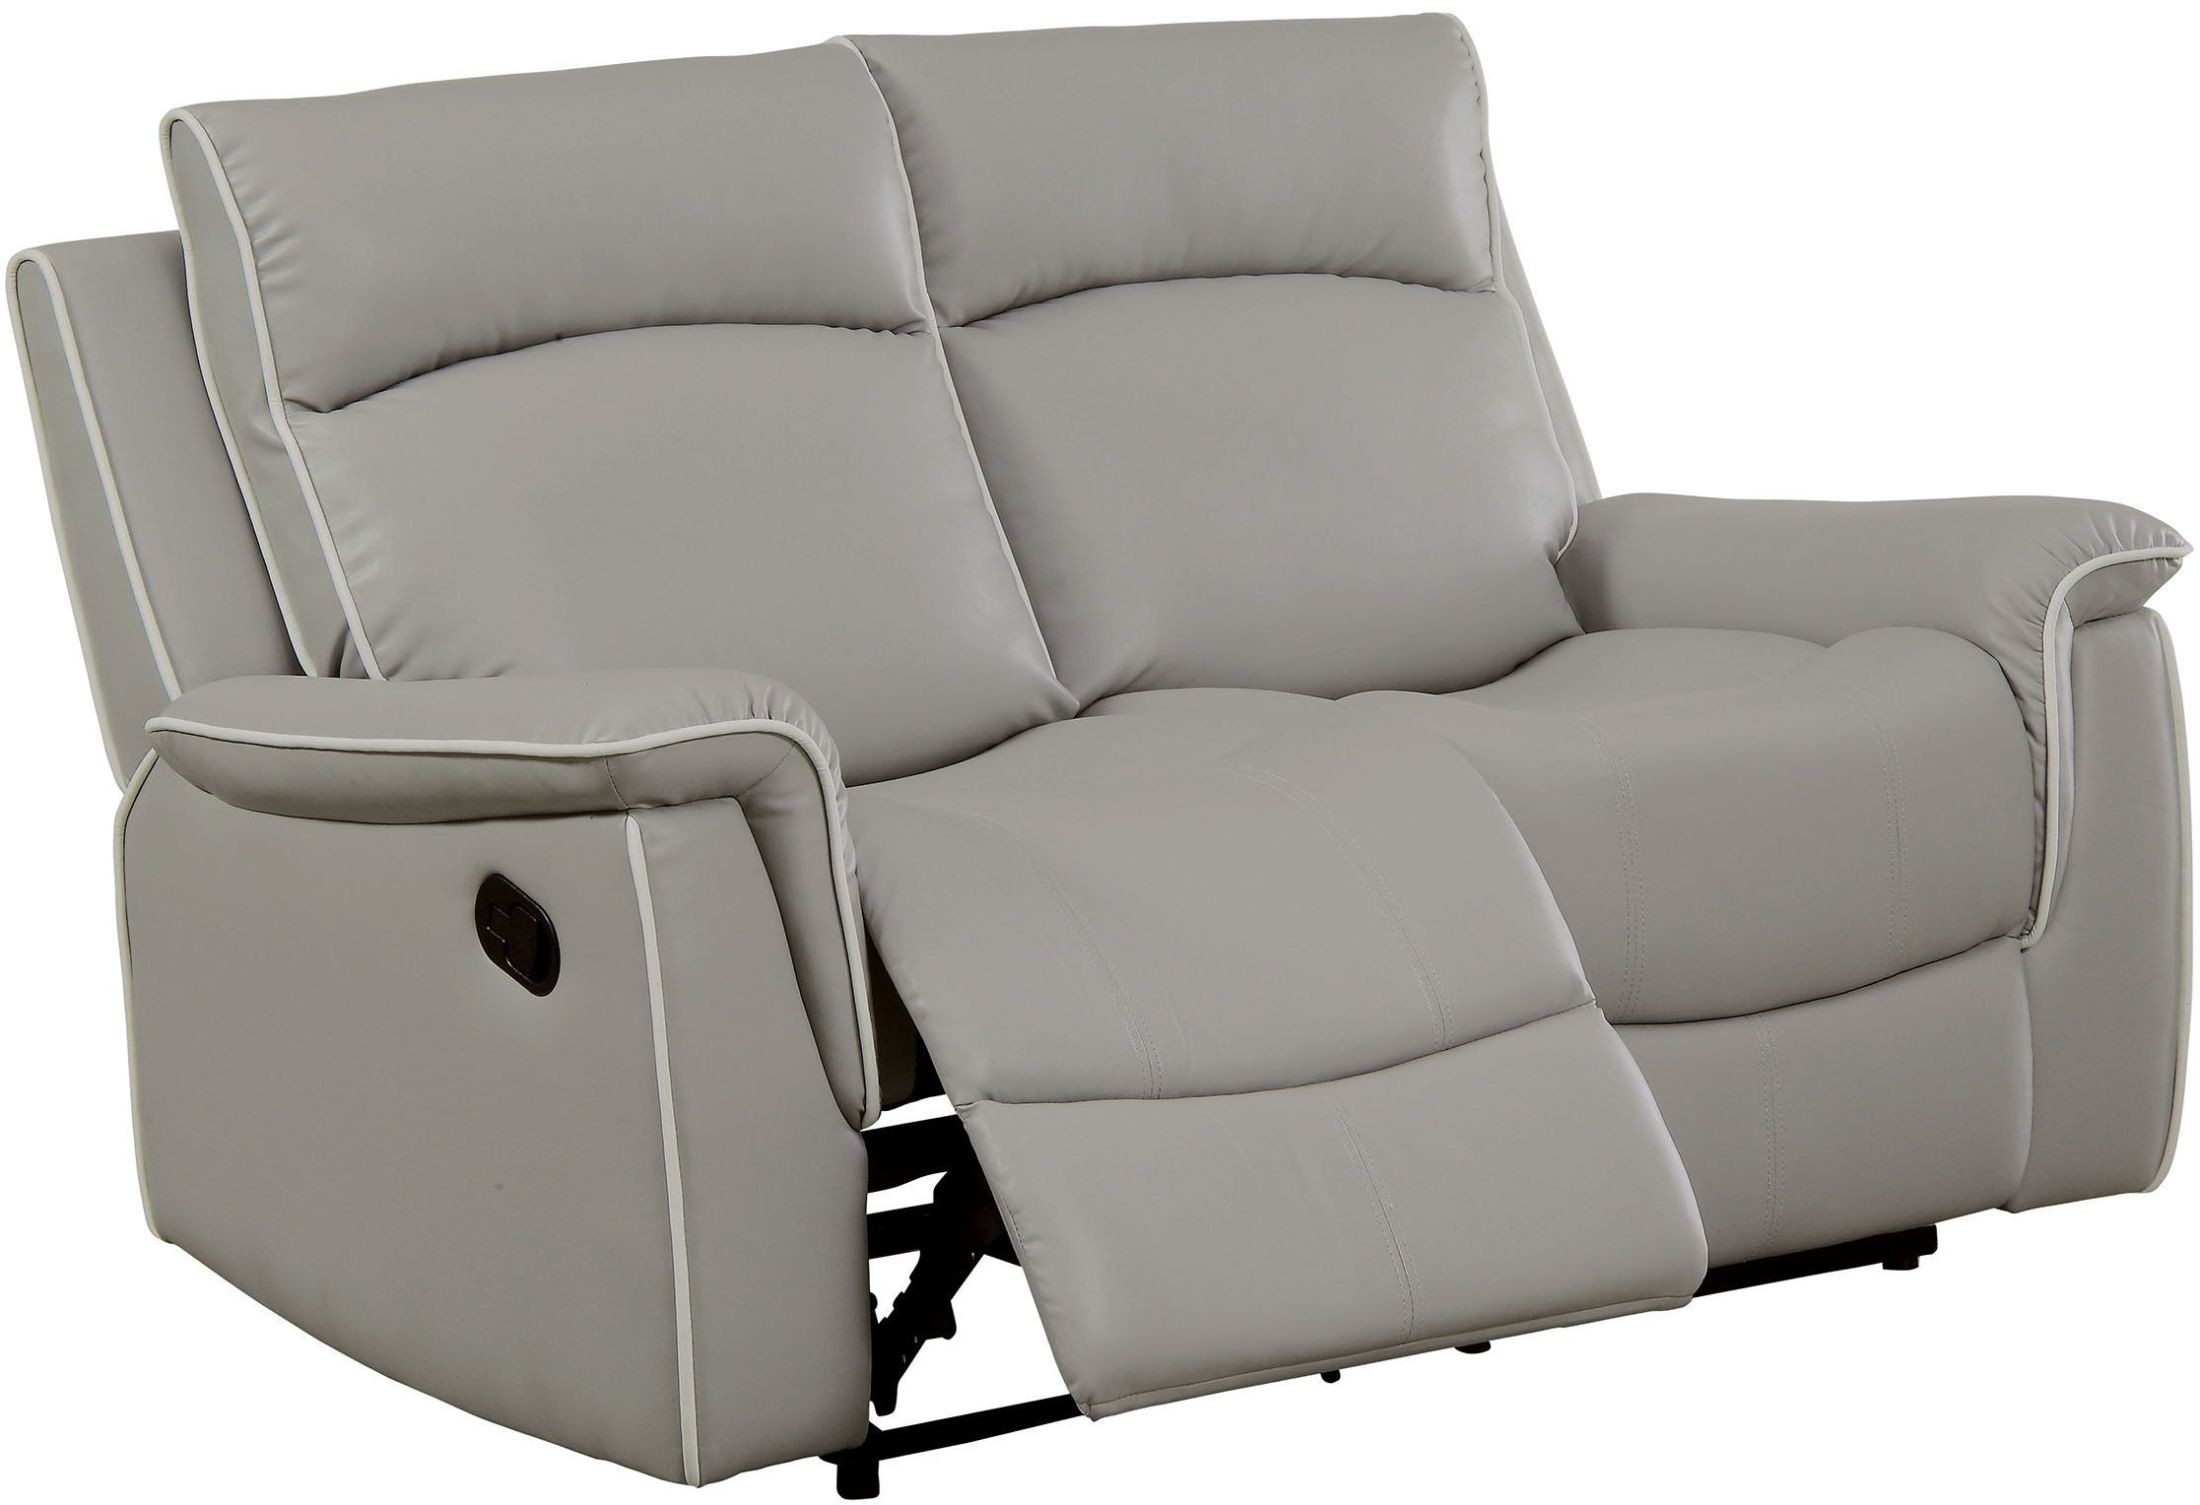 Gray Recliner Chair Salome Light Gray Recliner Loveseat From Furniture Of